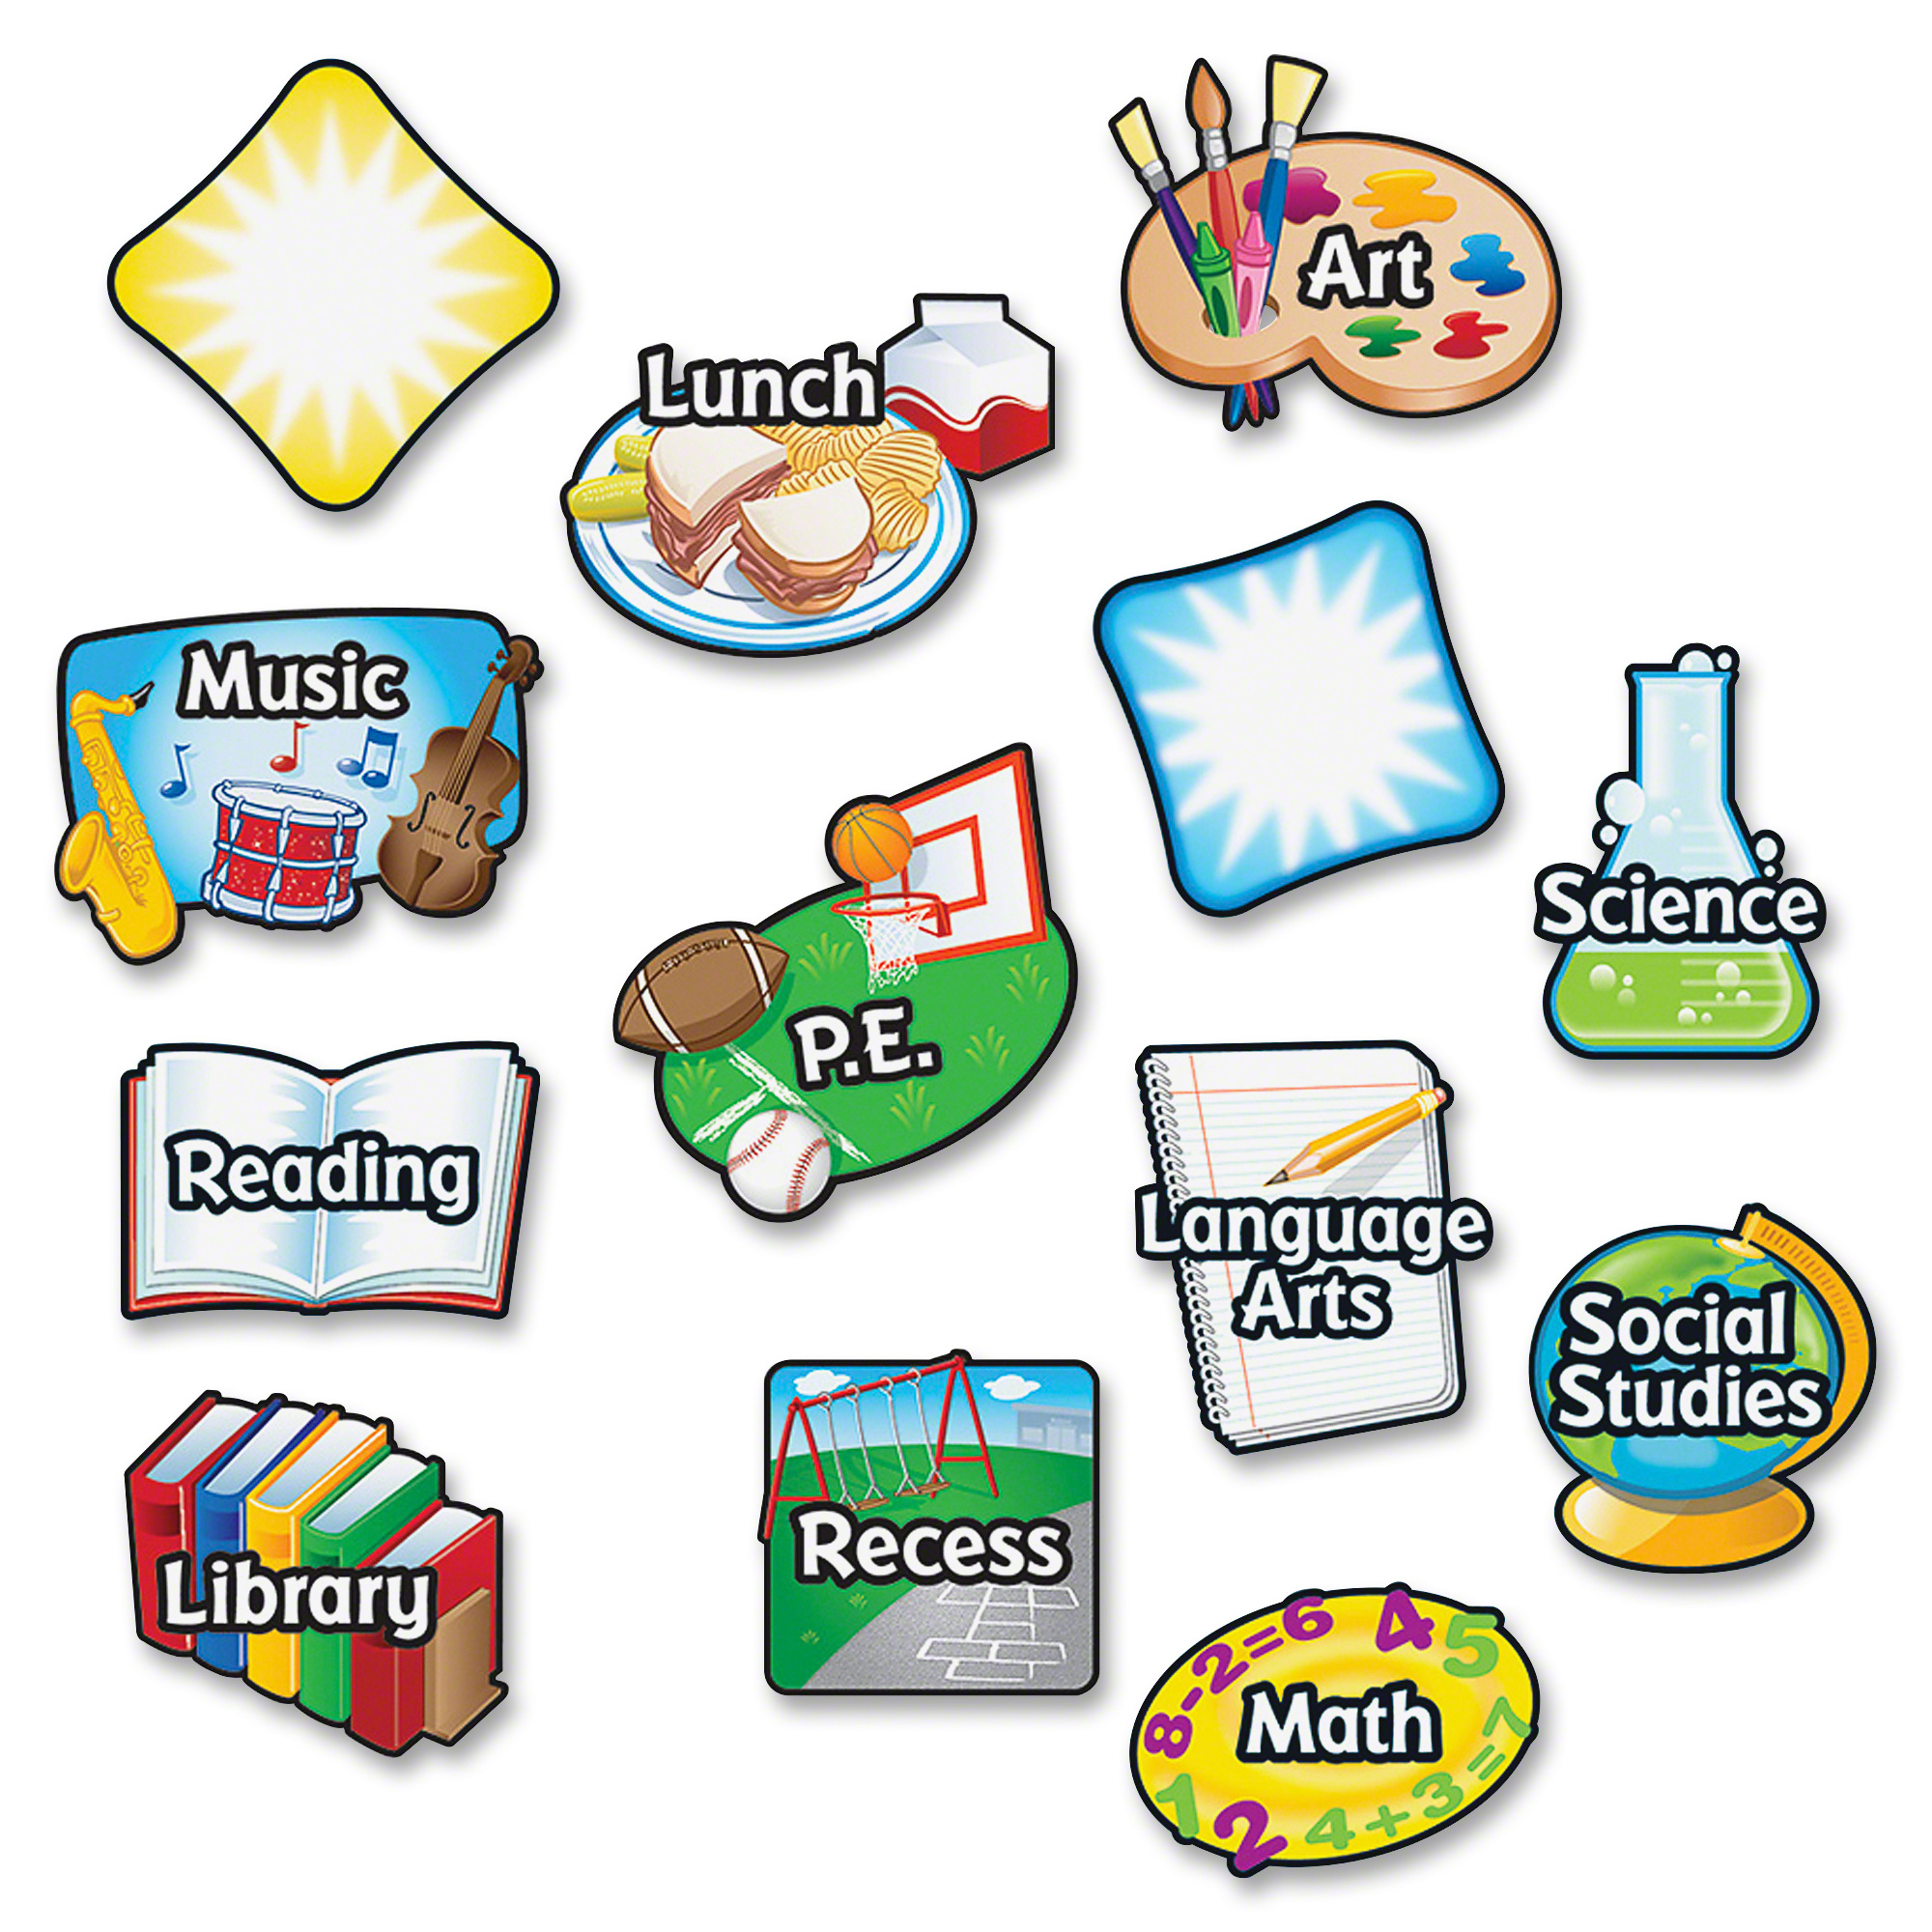 Library social studies clipart explore pictures - ClipartPost banner freeuse library